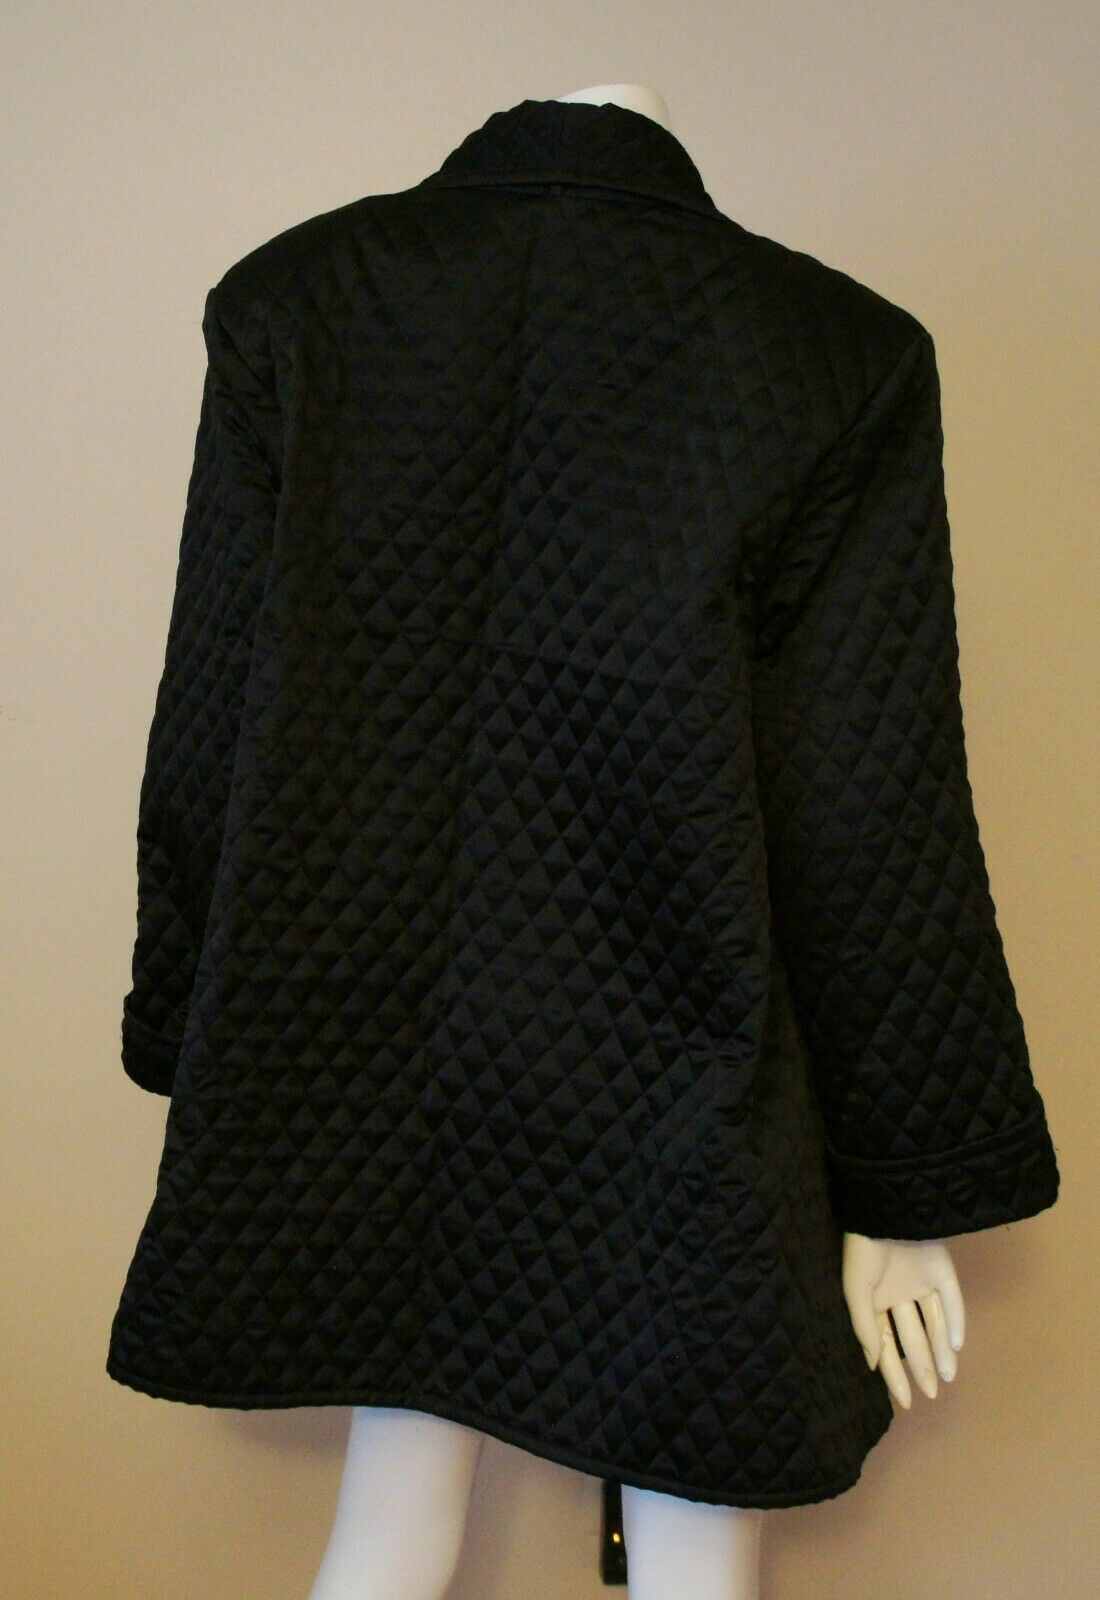 Auth Amen Wardy Black Quilted Open Jacket Sz M - image 3